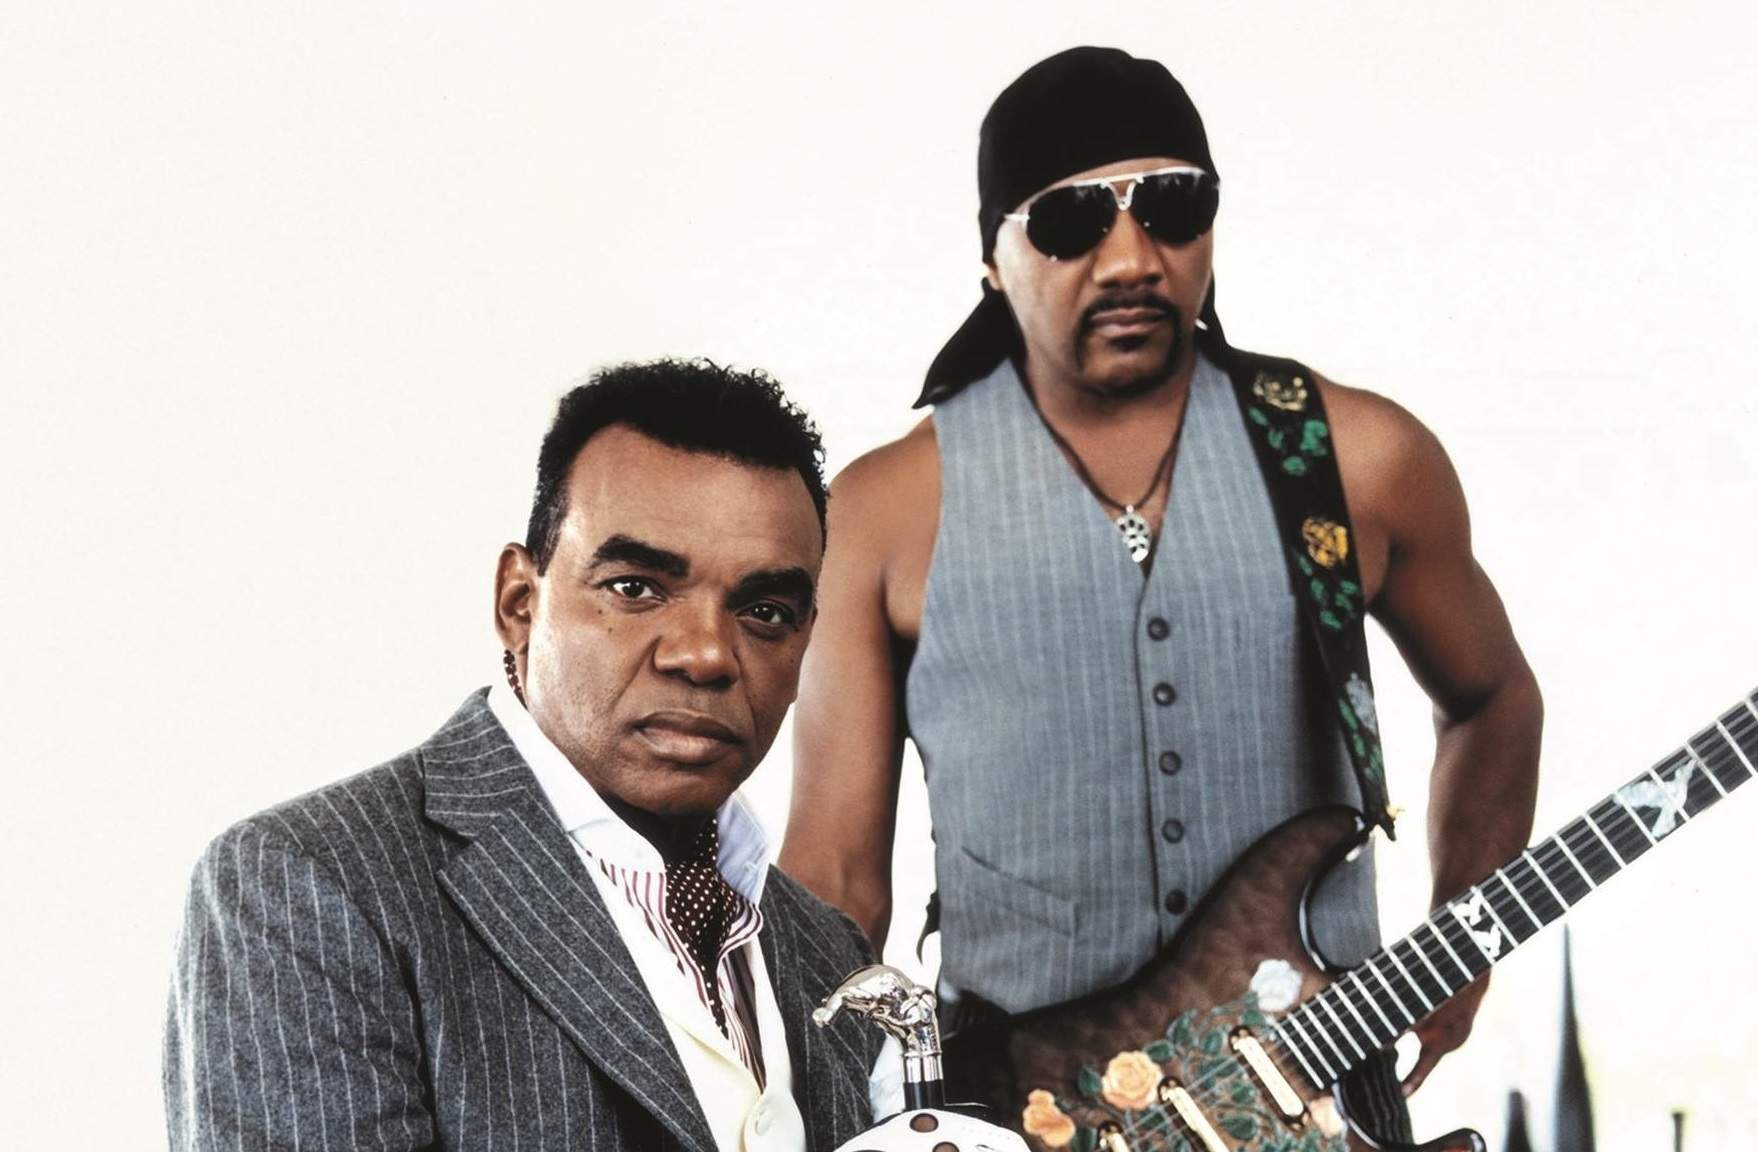 SoundBytes: Isley Brothers, Billy Cobham, Nahko and Medicine